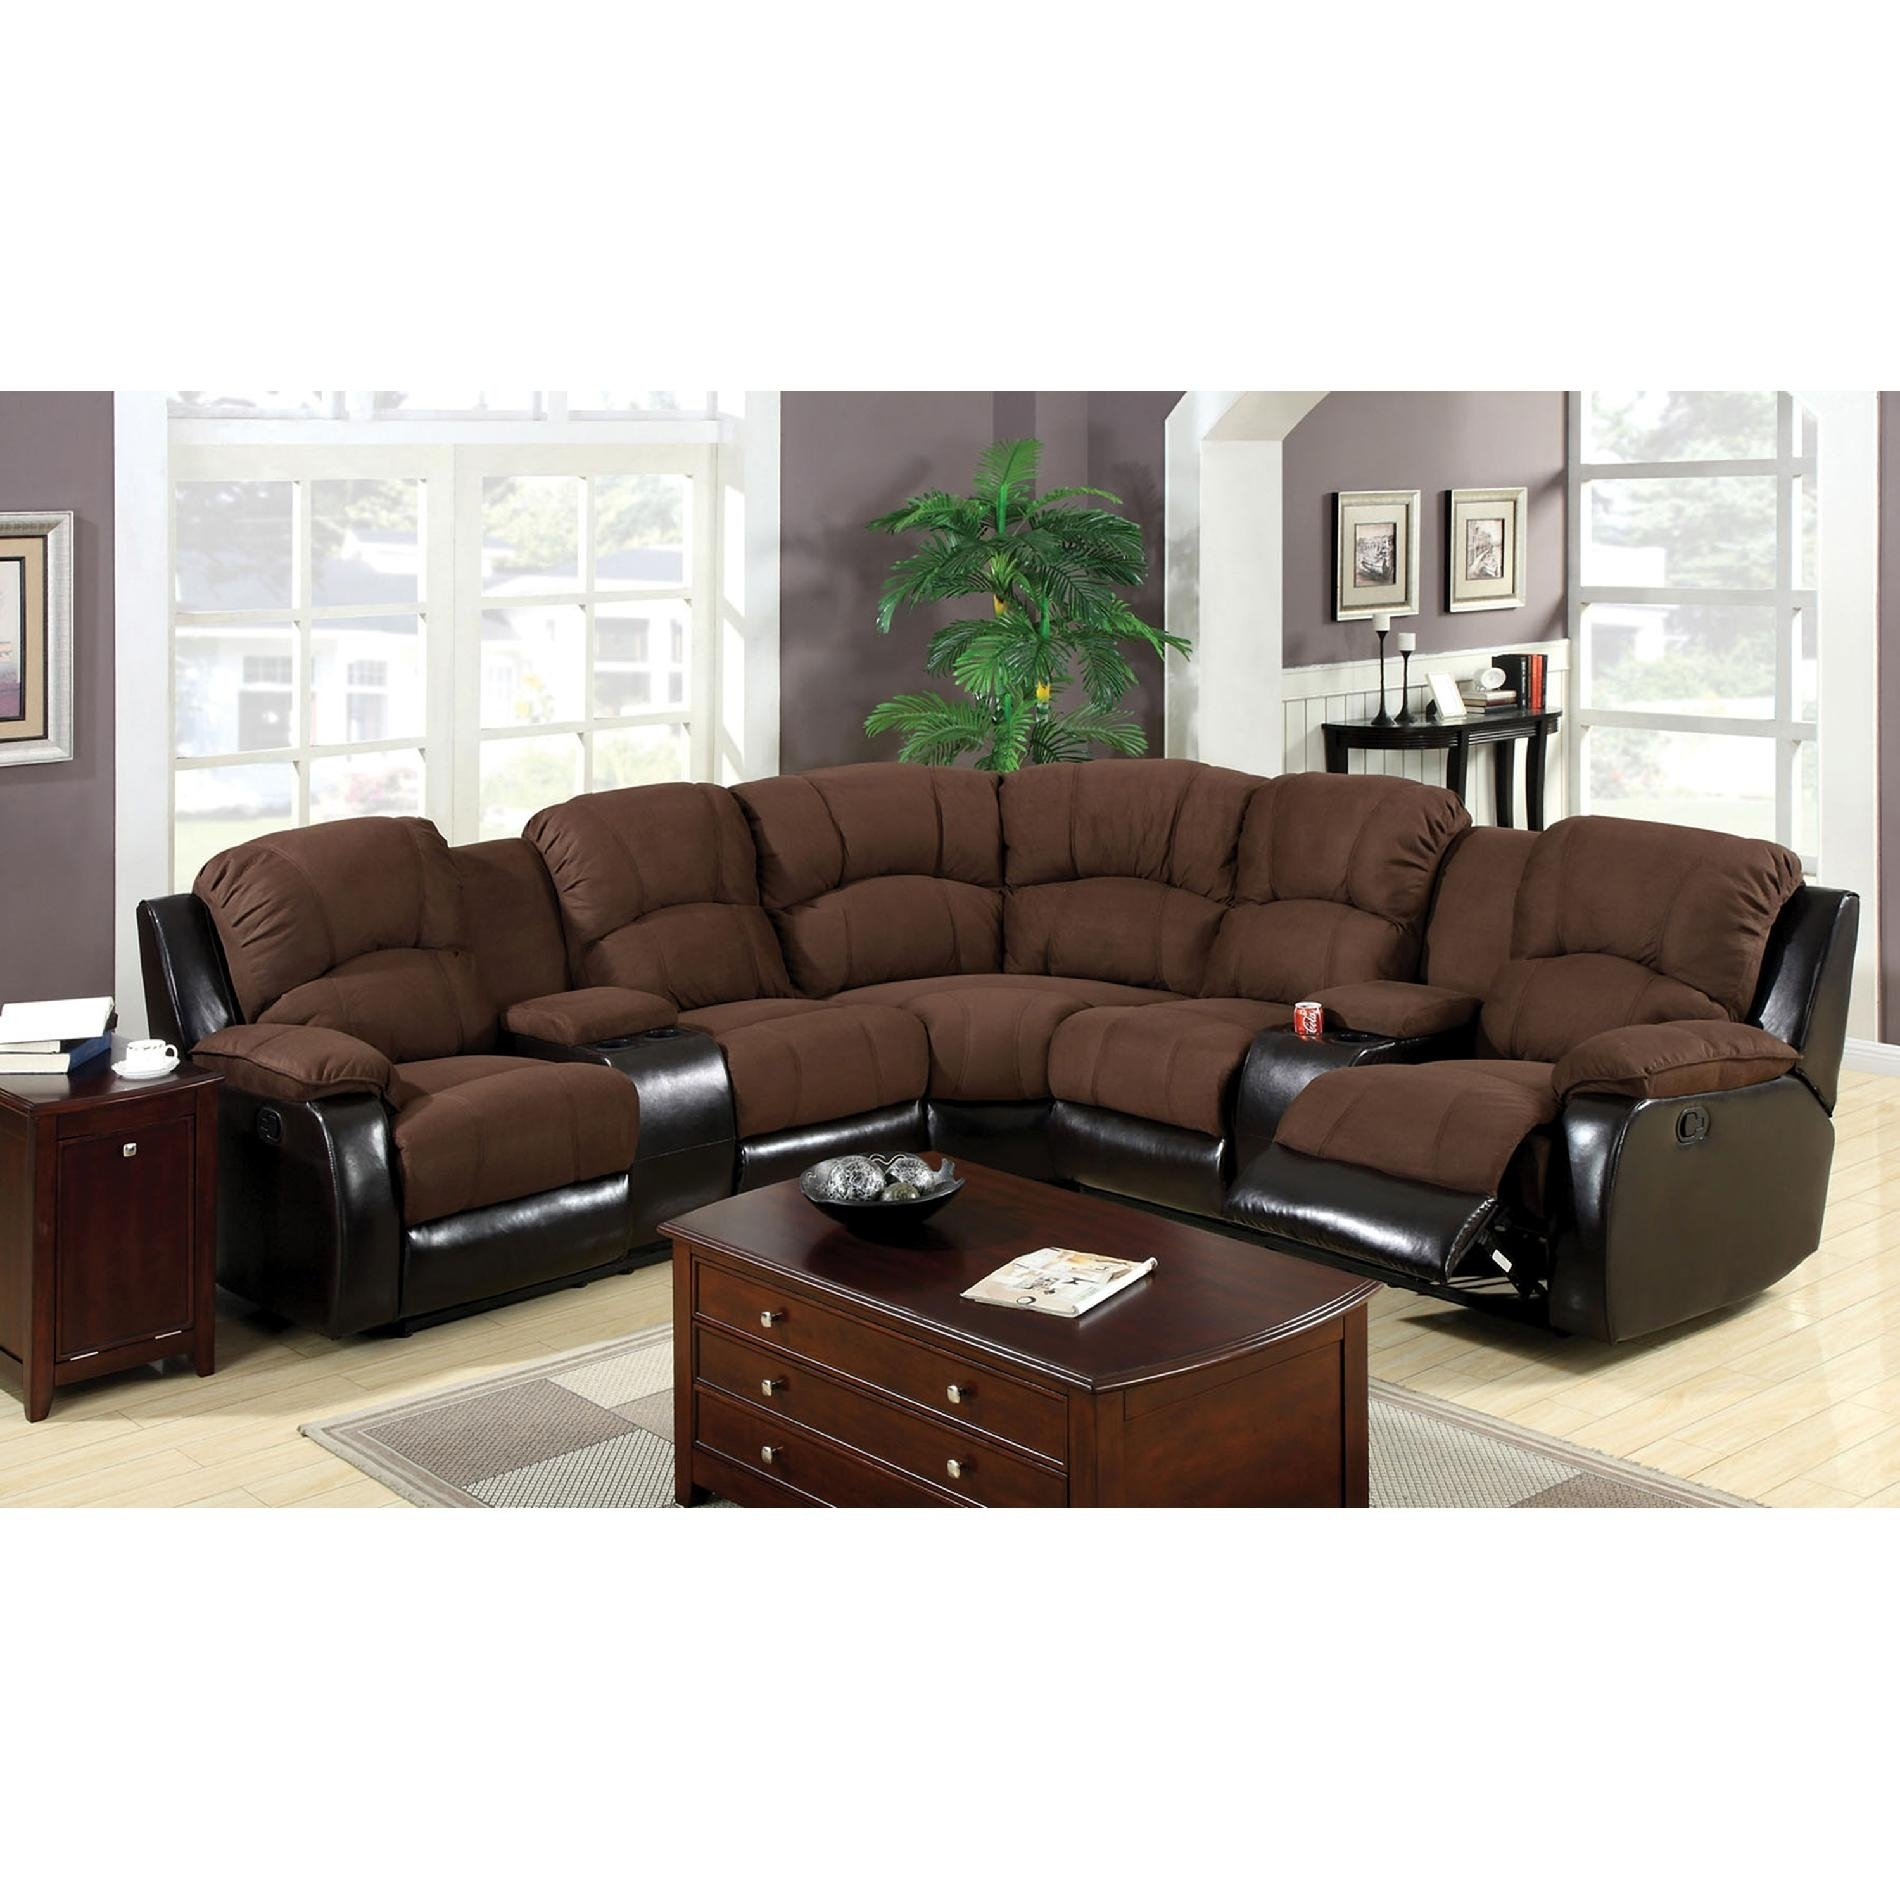 Brilliant Kmart Sectional Sofa – Buildsimplehome Intended For Kmart Sectional Sofas (View 2 of 10)